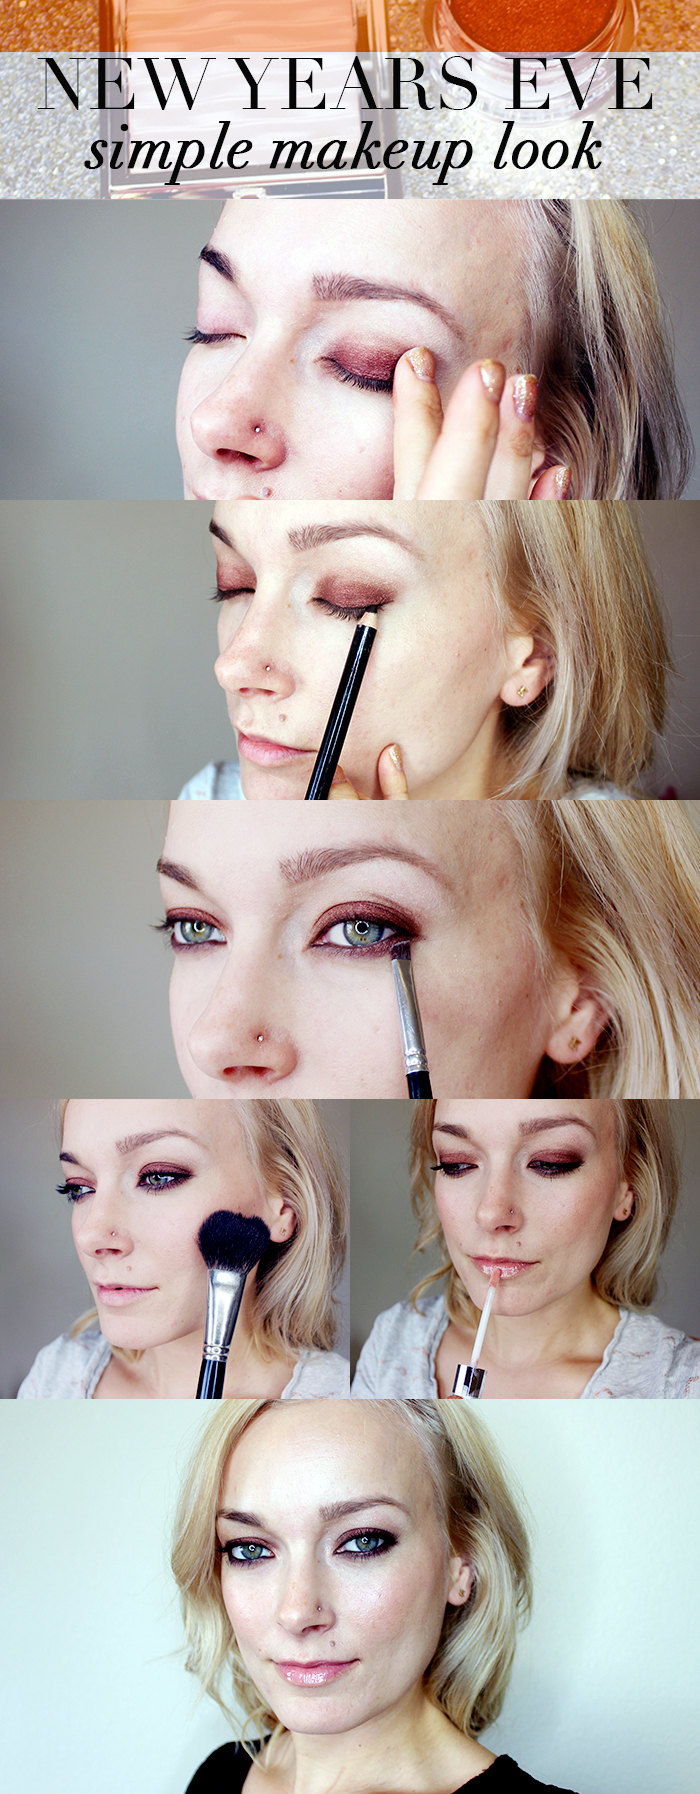 5 minute new years eve makeup look with mirabella beauty. Black Bedroom Furniture Sets. Home Design Ideas